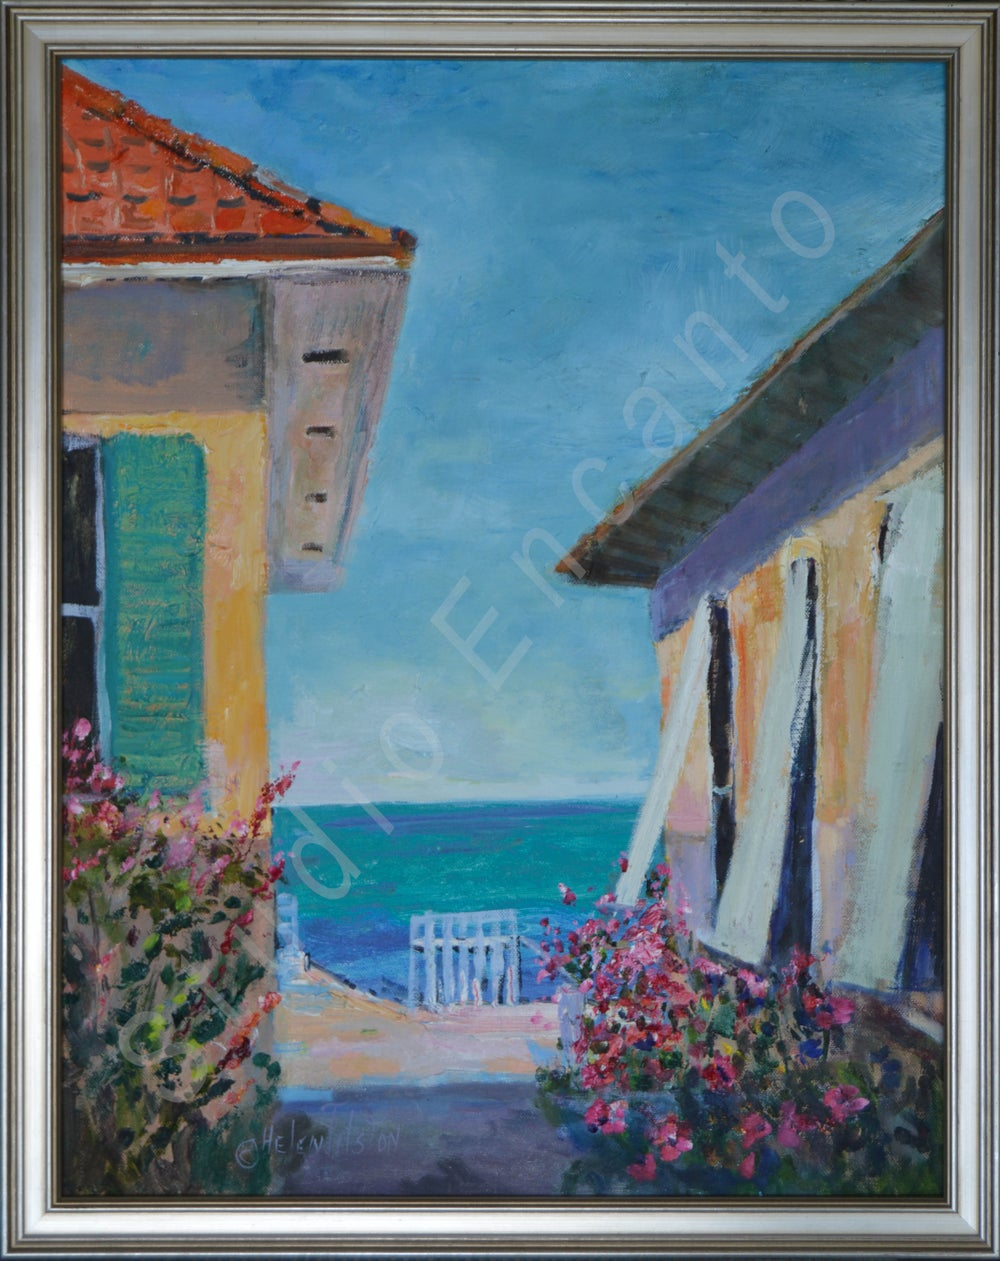 Image of Home on the Gulf by Helen Tilston